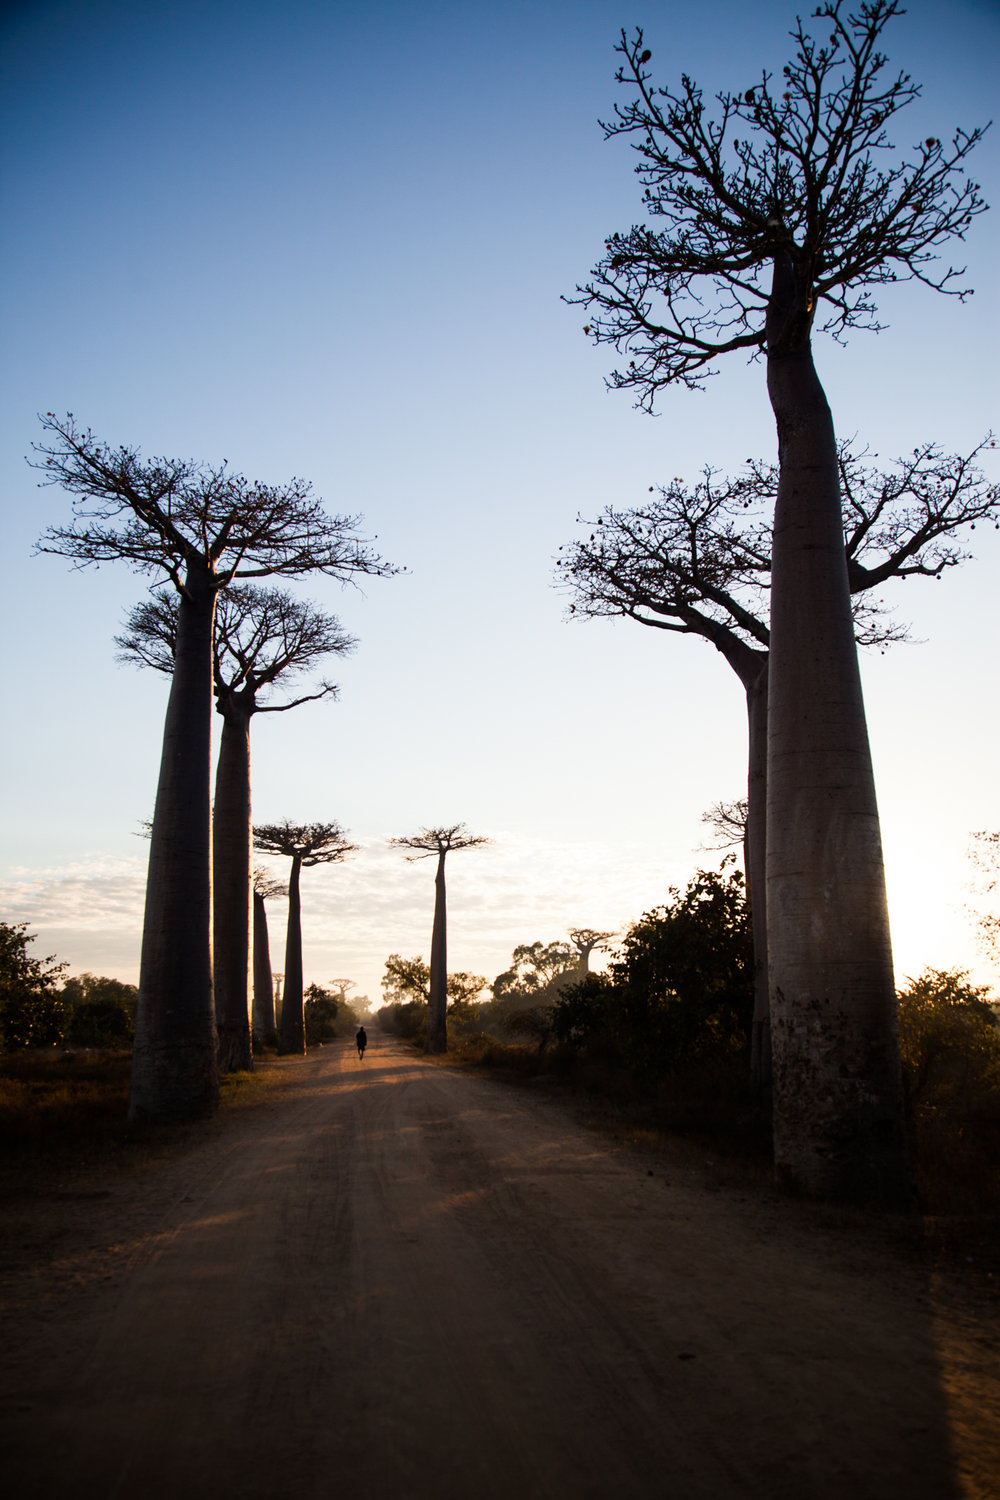 Locals are Proud of their Trees and are glad of the Tourists but Believe These Visitors do not Understand the Cost of Preserving Such a Unique Natural Monument